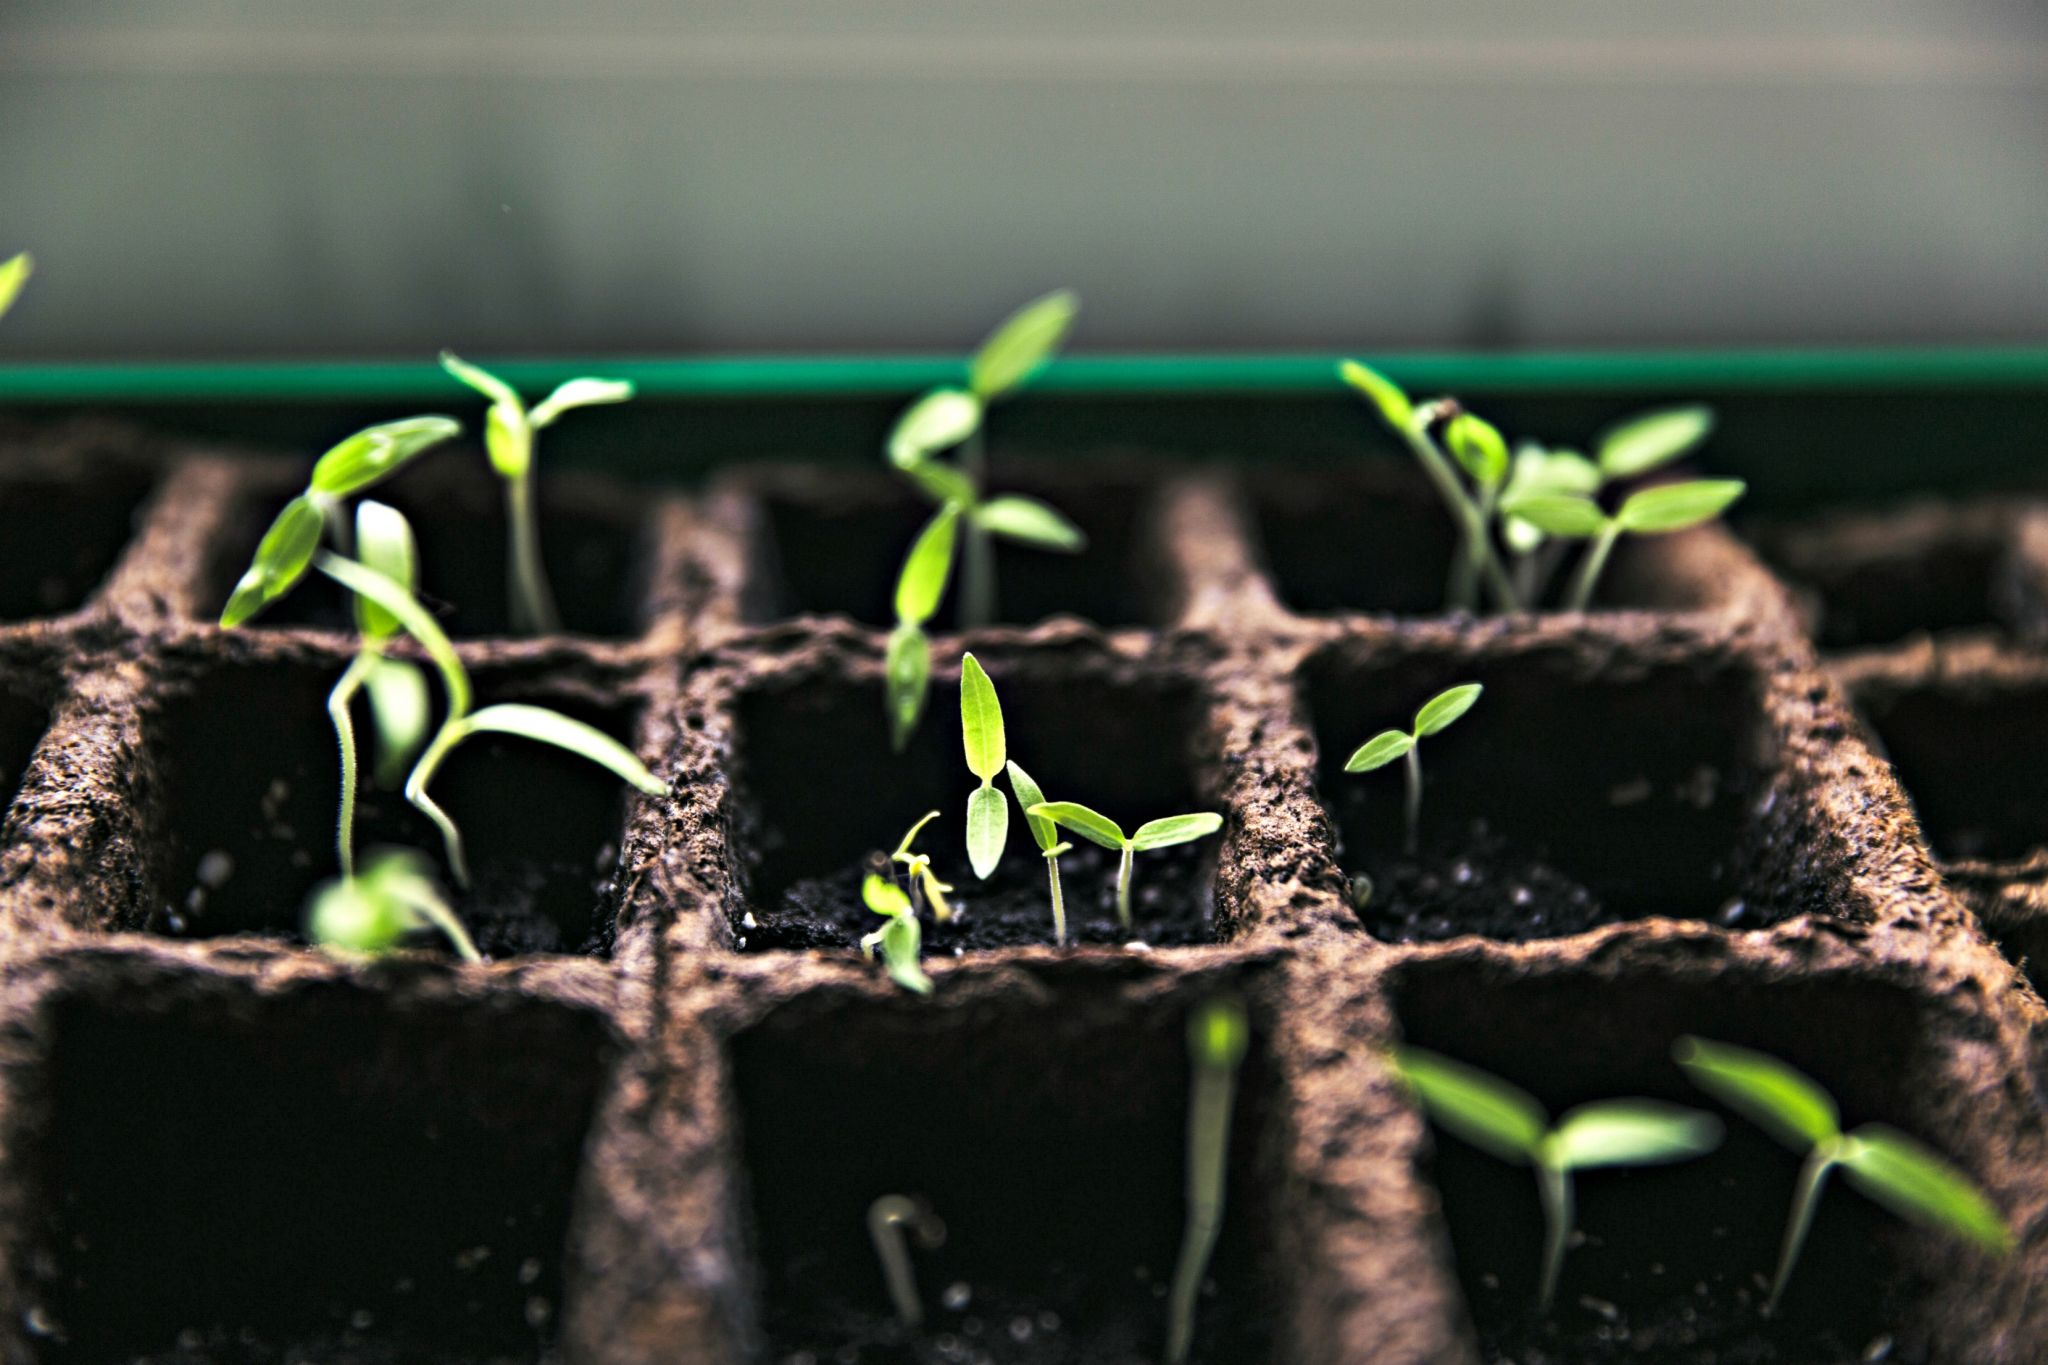 Half term fun could be getting out into the garden and growing some vegetables from seed